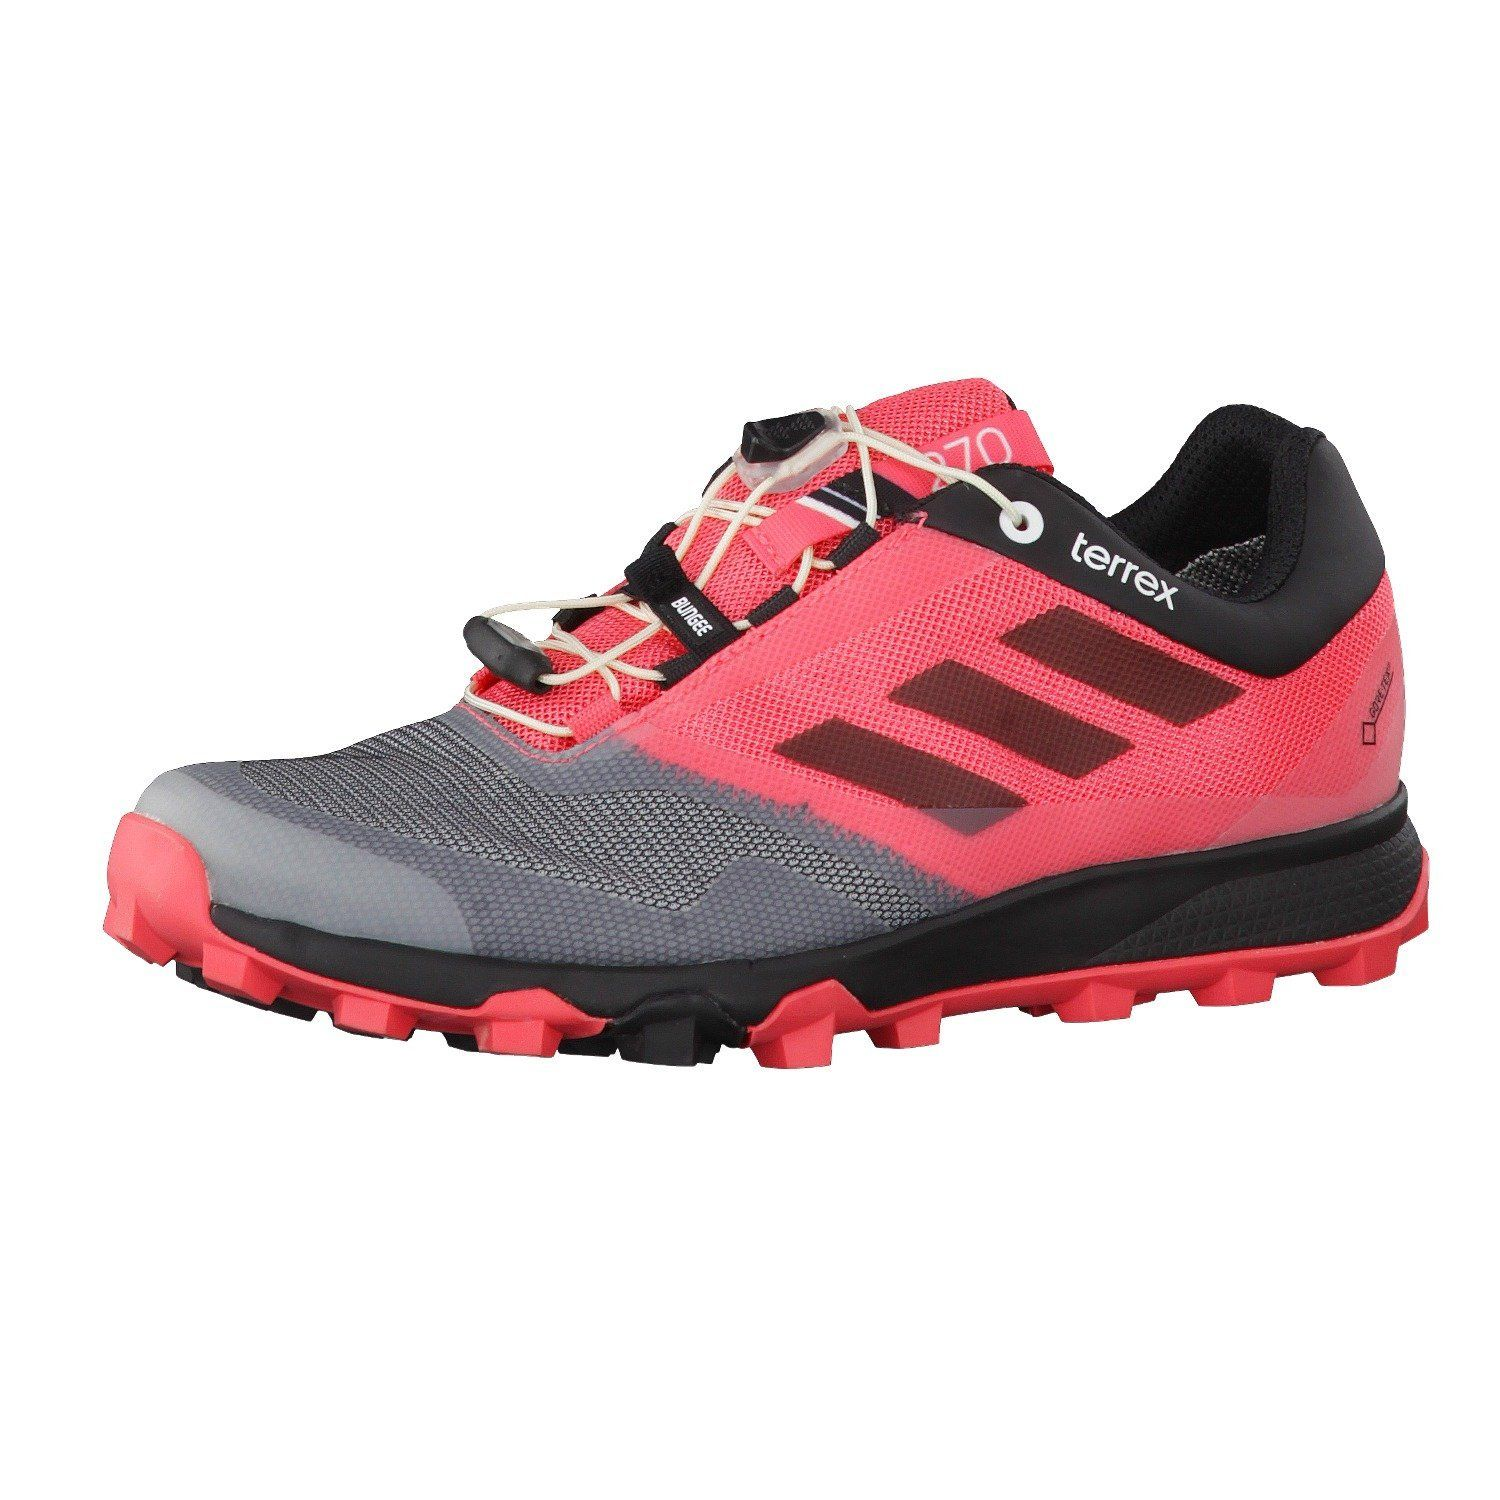 Pin on Women's Trail Running Shoes